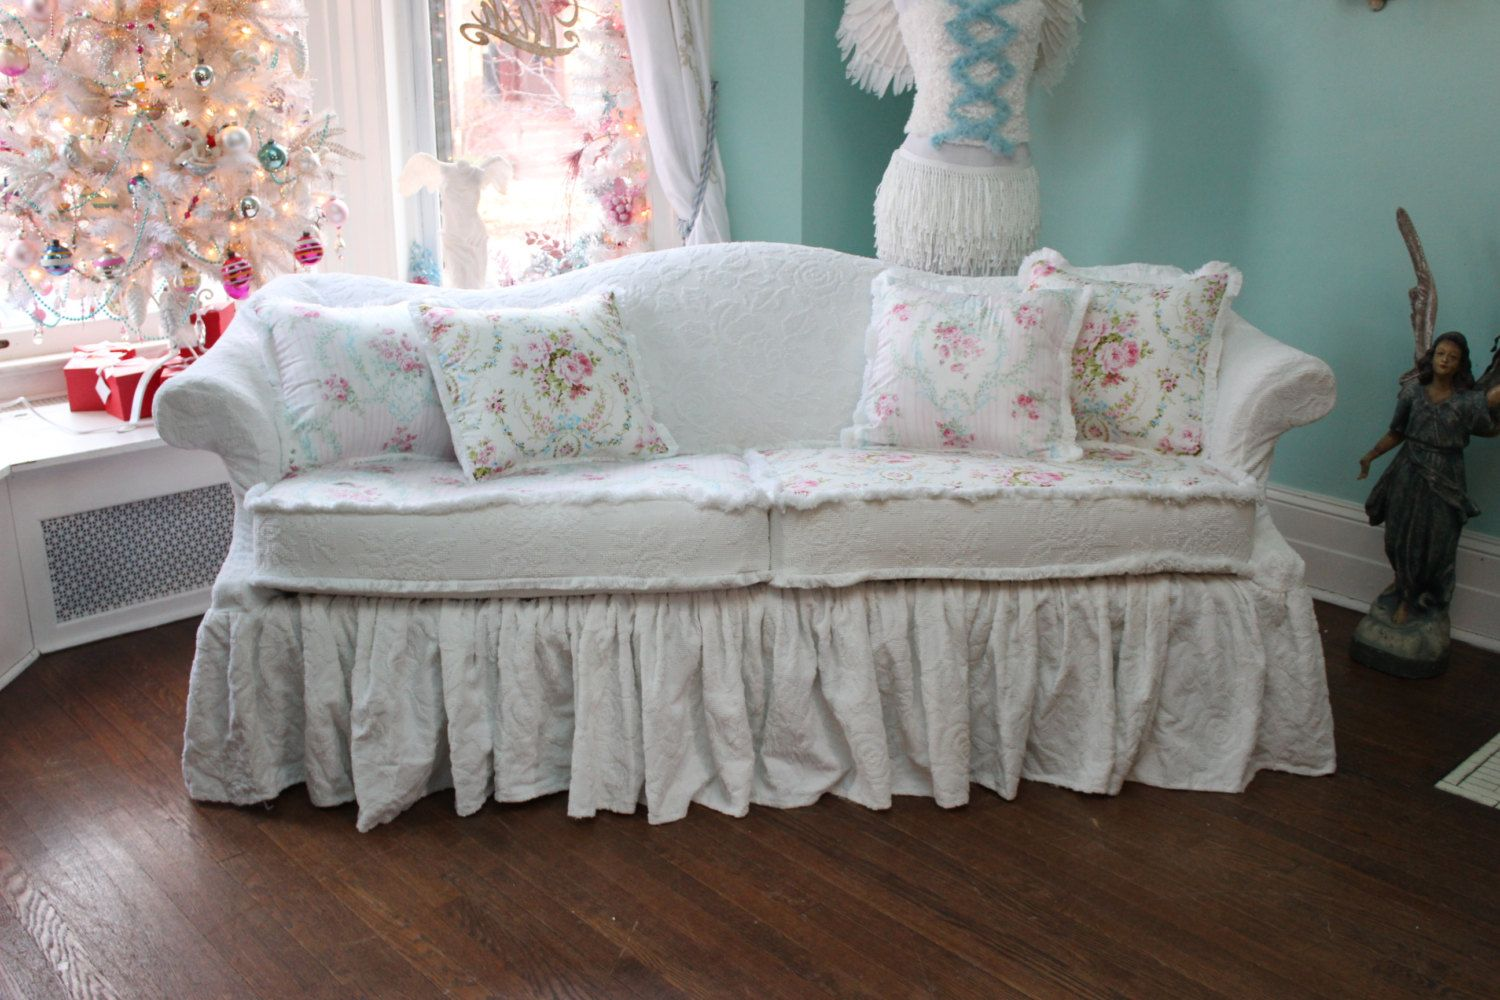 beach house sofa slipcover costco ca table shabby chic couch ruffle roses white by